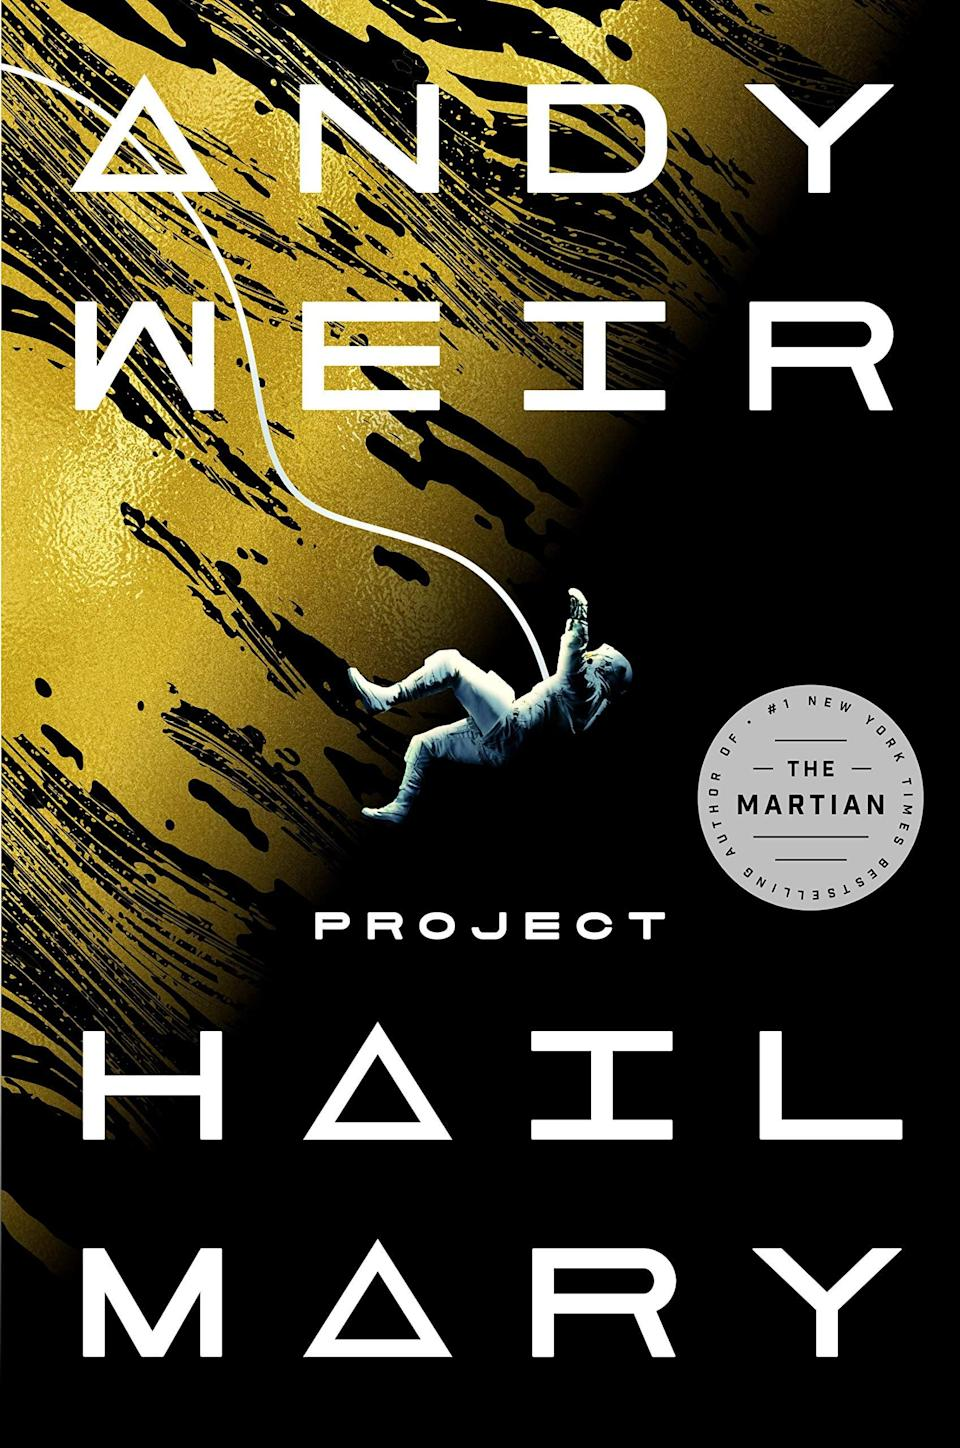 <p><strong>The Martian</strong> author Andy Weir is back with another space adventure in <span><strong>Hail Mary</strong></span>. This time around, the focus is on an astronaut named Ryland Grace, who awakens to discover the rest of his crew is dead and he's alone in the farthest reaches of space on a mission to save the world. </p> <p><em>Out May 4</em></p>